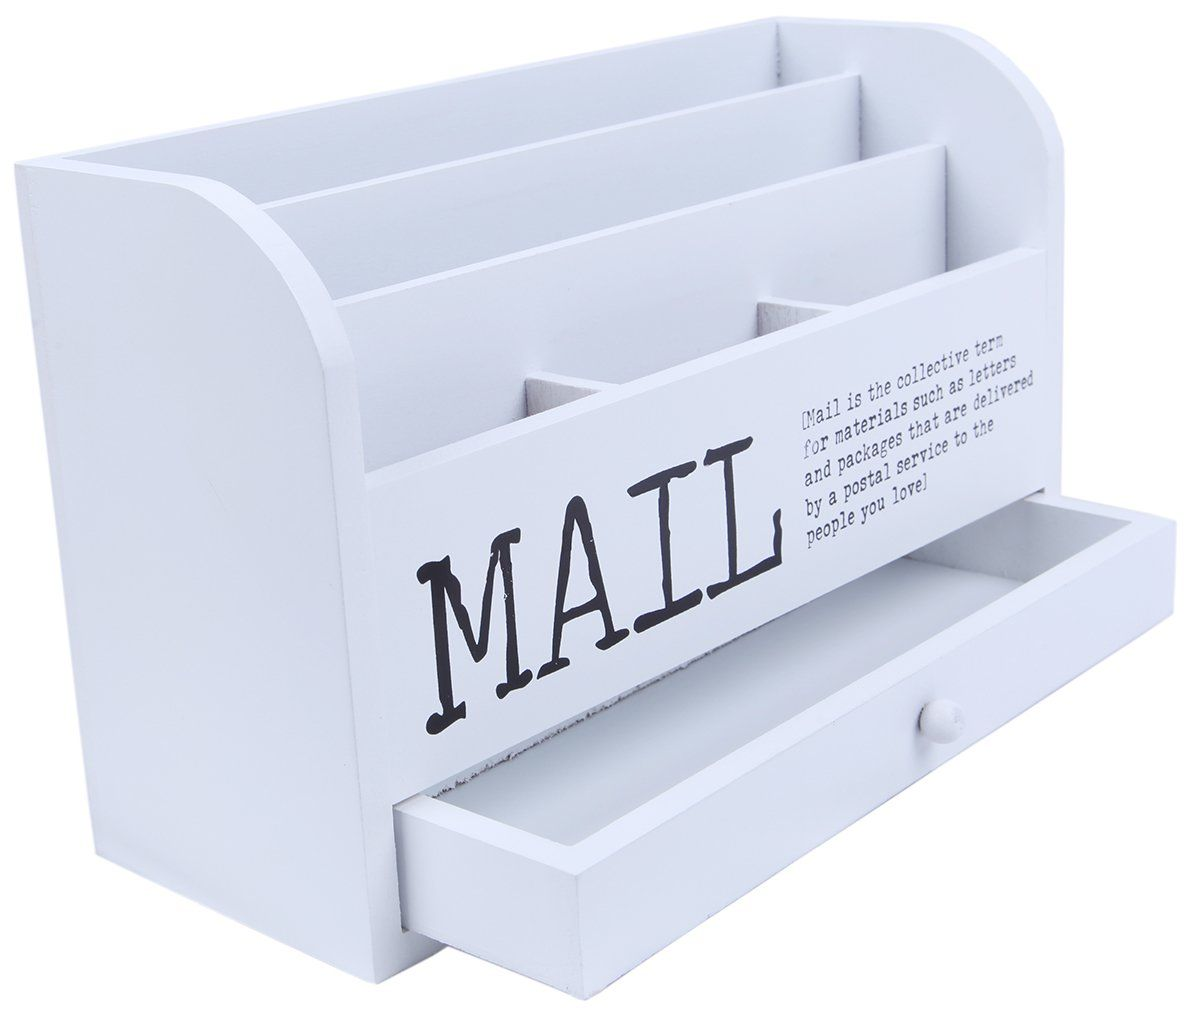 Mail Organizer - 3 Tiered White Letter File Wooden Desk